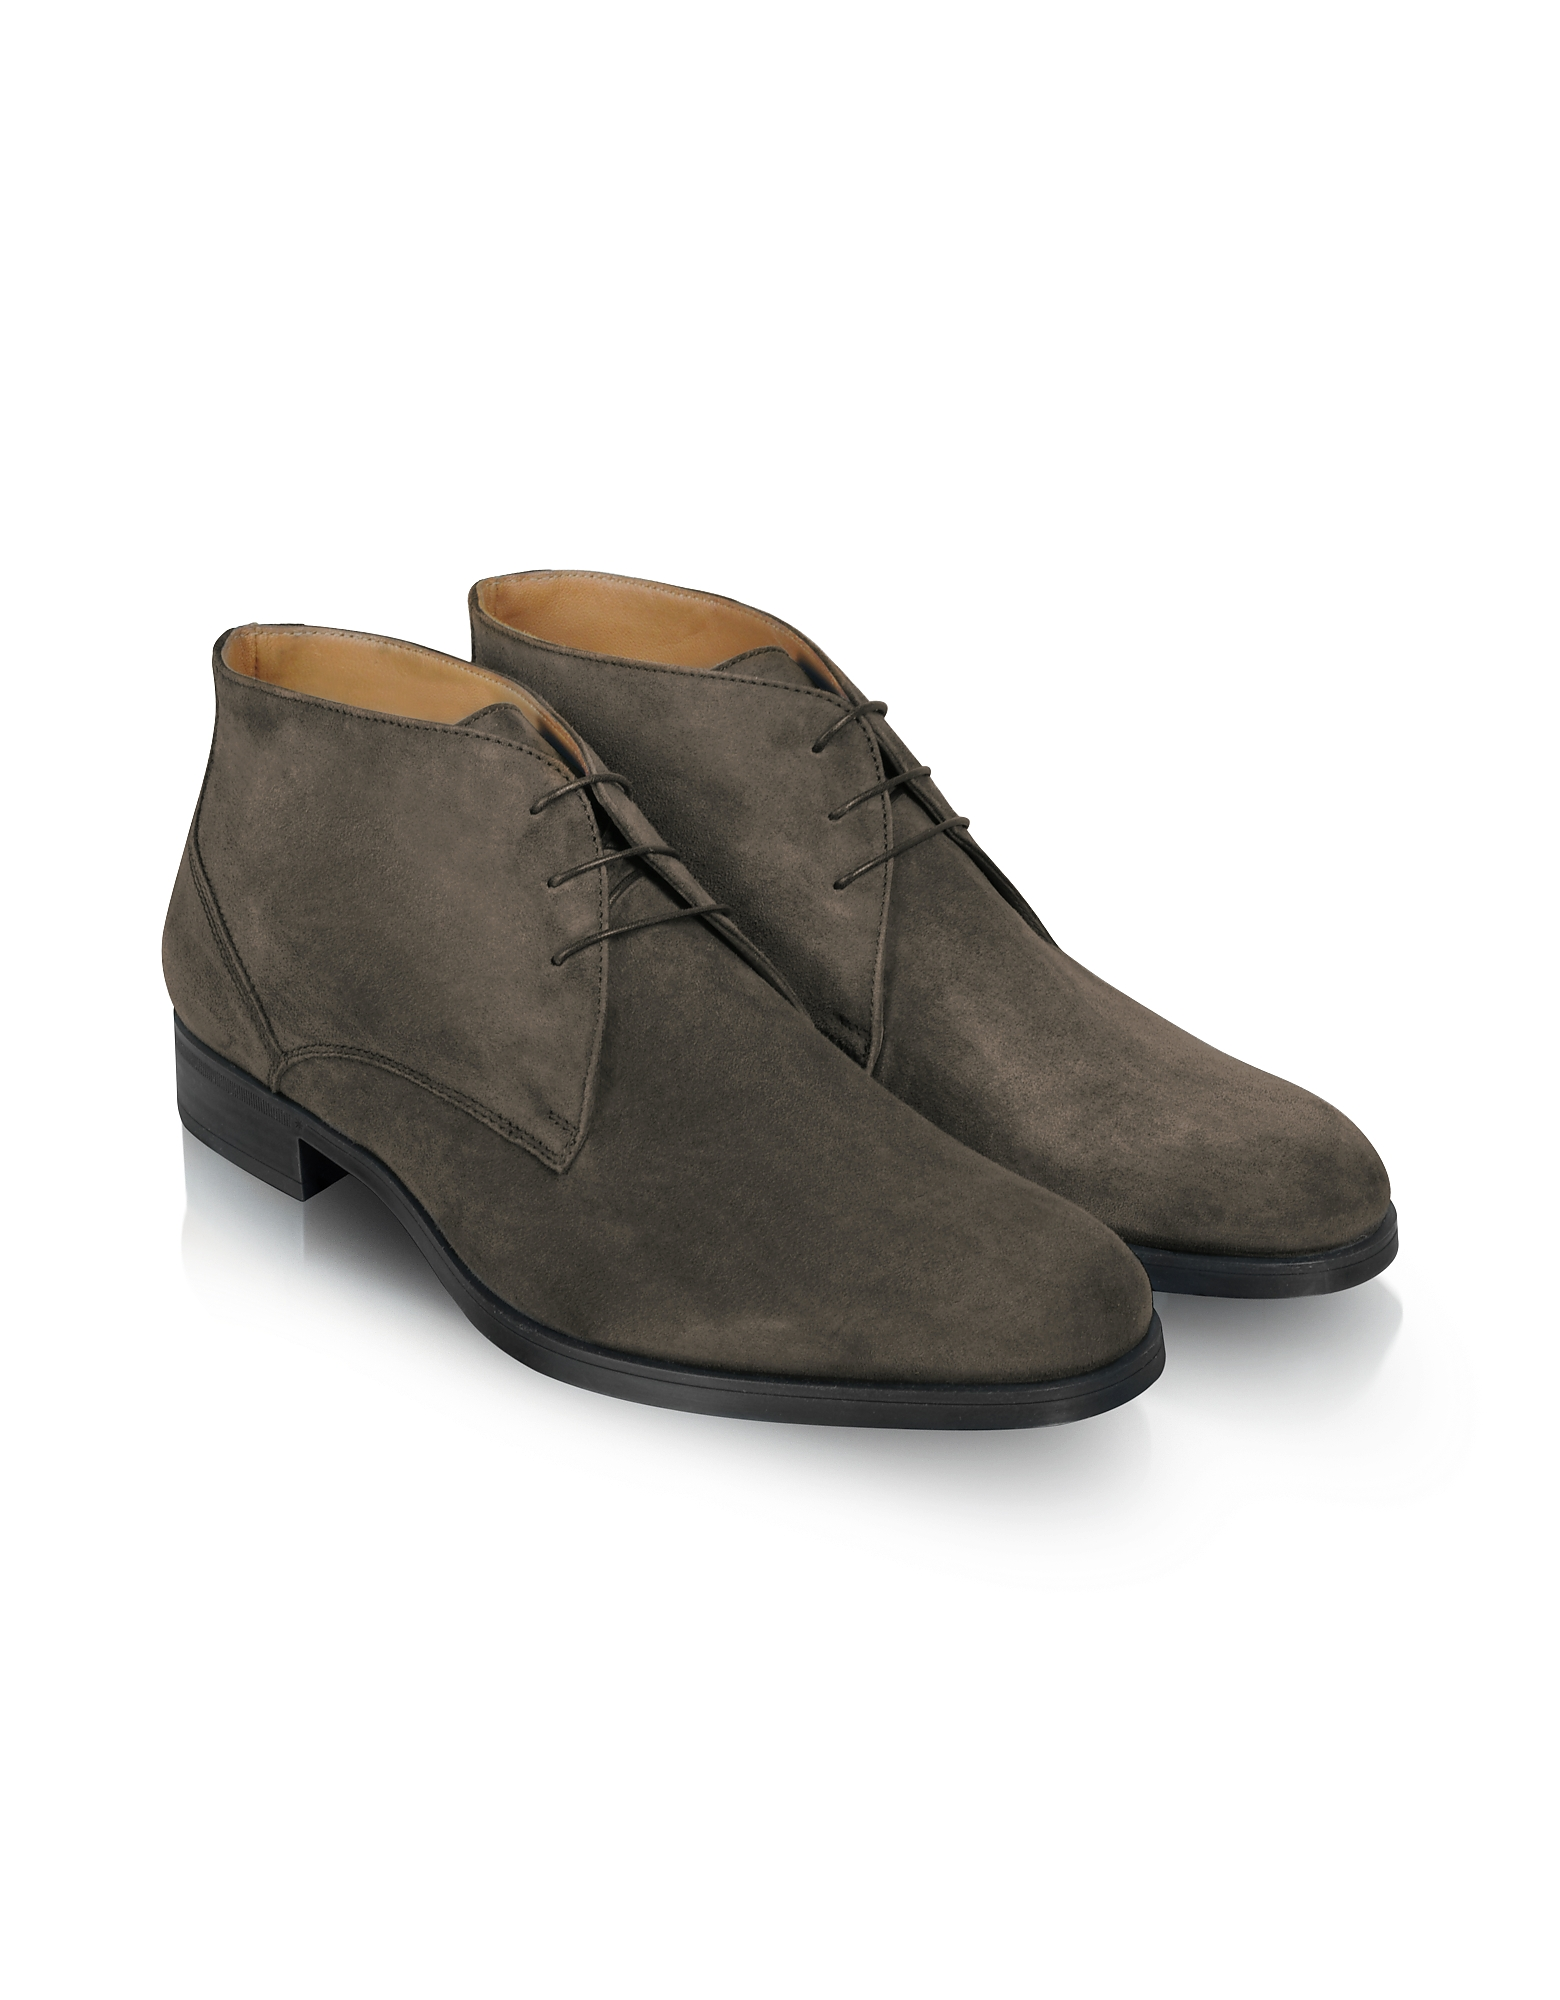 Moreschi Shoes, Stiria - Gray Suede Ankle Boots